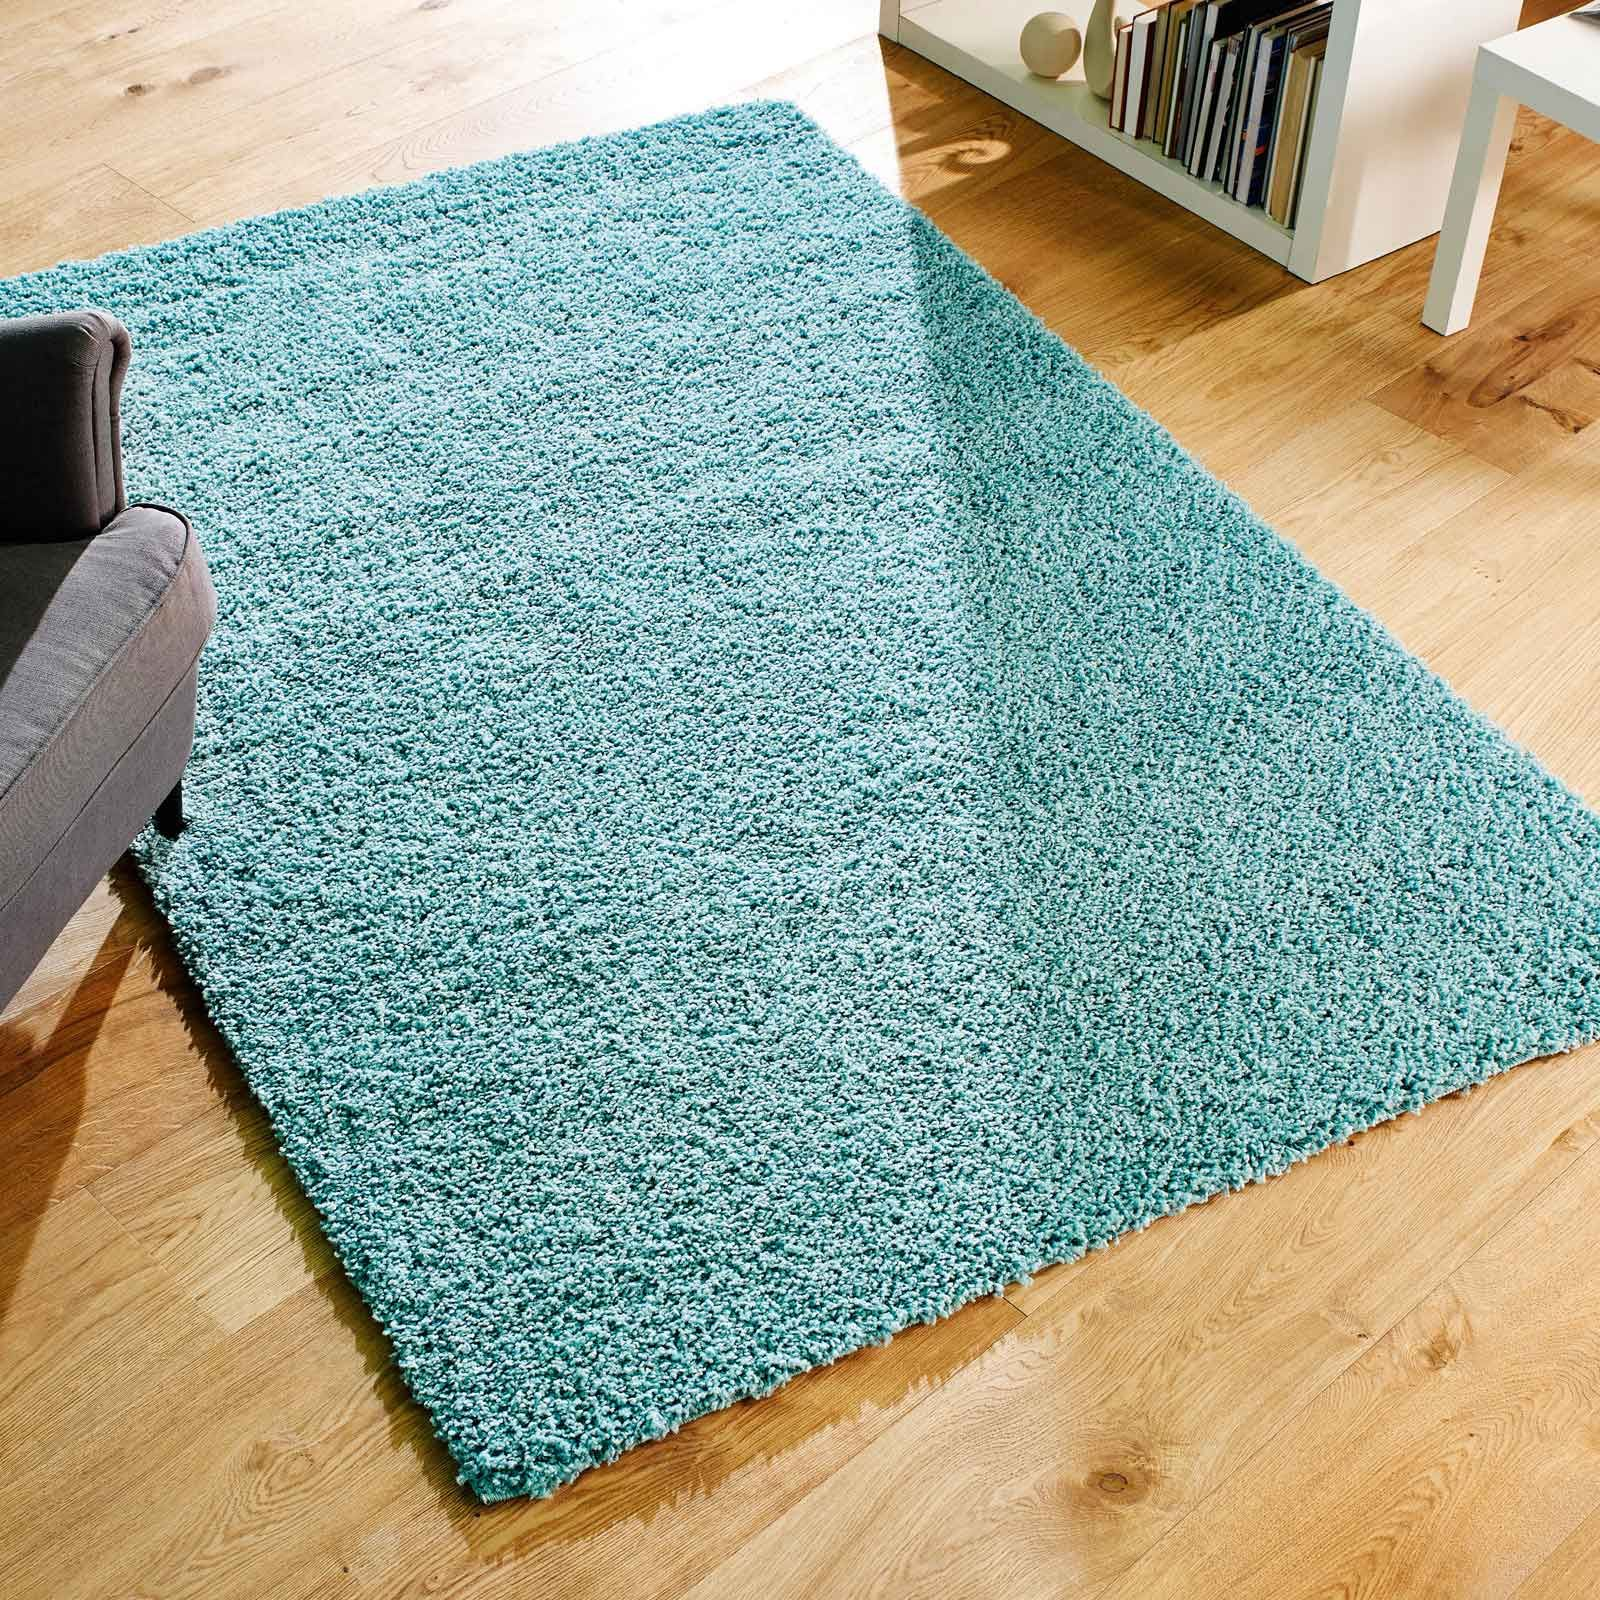 Opus Red Rugs Have A Soft Pile That Is Stain Resistant Colourfast Water Repellent And Moth Proof This Shaggy Collection Is Available Rugs Blue Rug Red Rugs